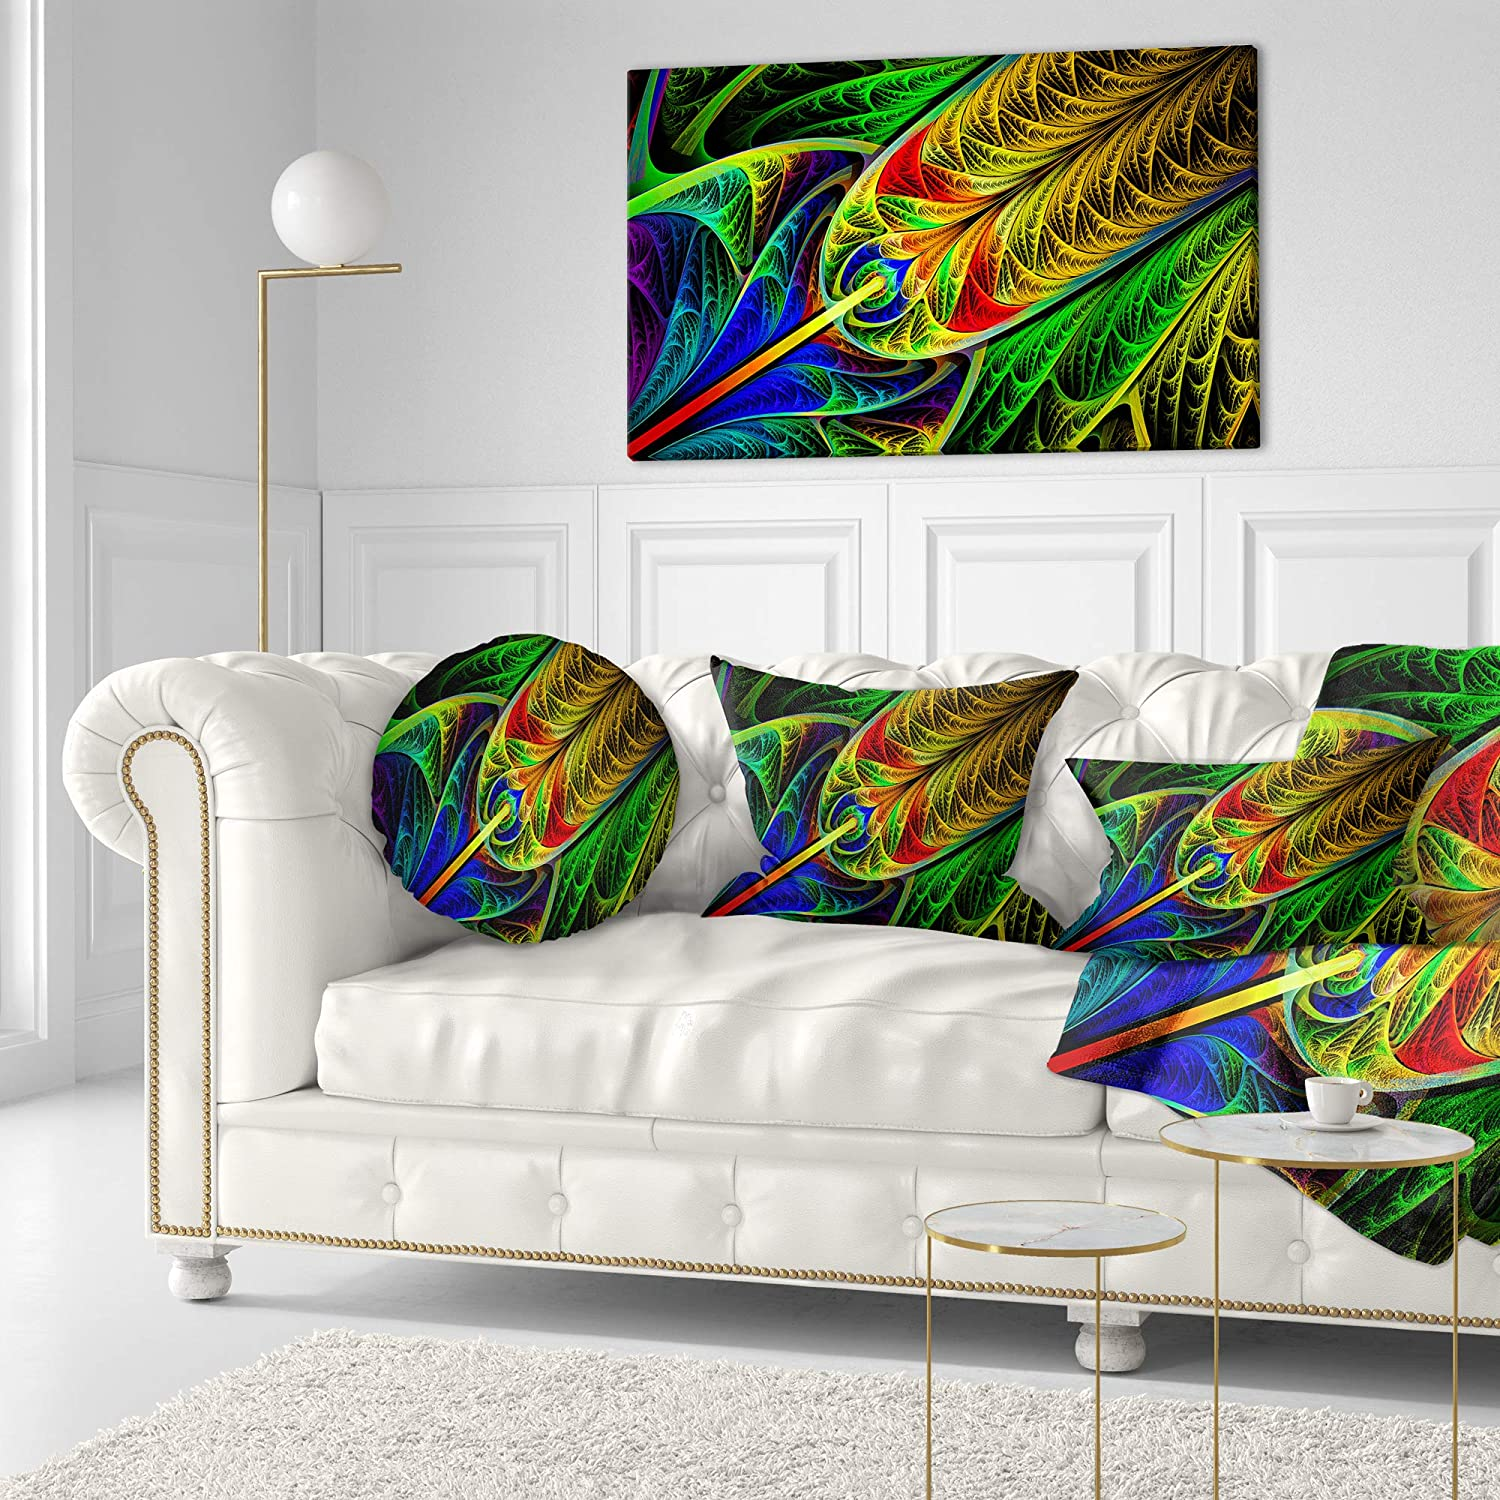 Designart CU15855-20-20-C Stained Glass with Glowing Designs Abstract Round Cushion Cover for Living Room Sofa Throw Pillow 20